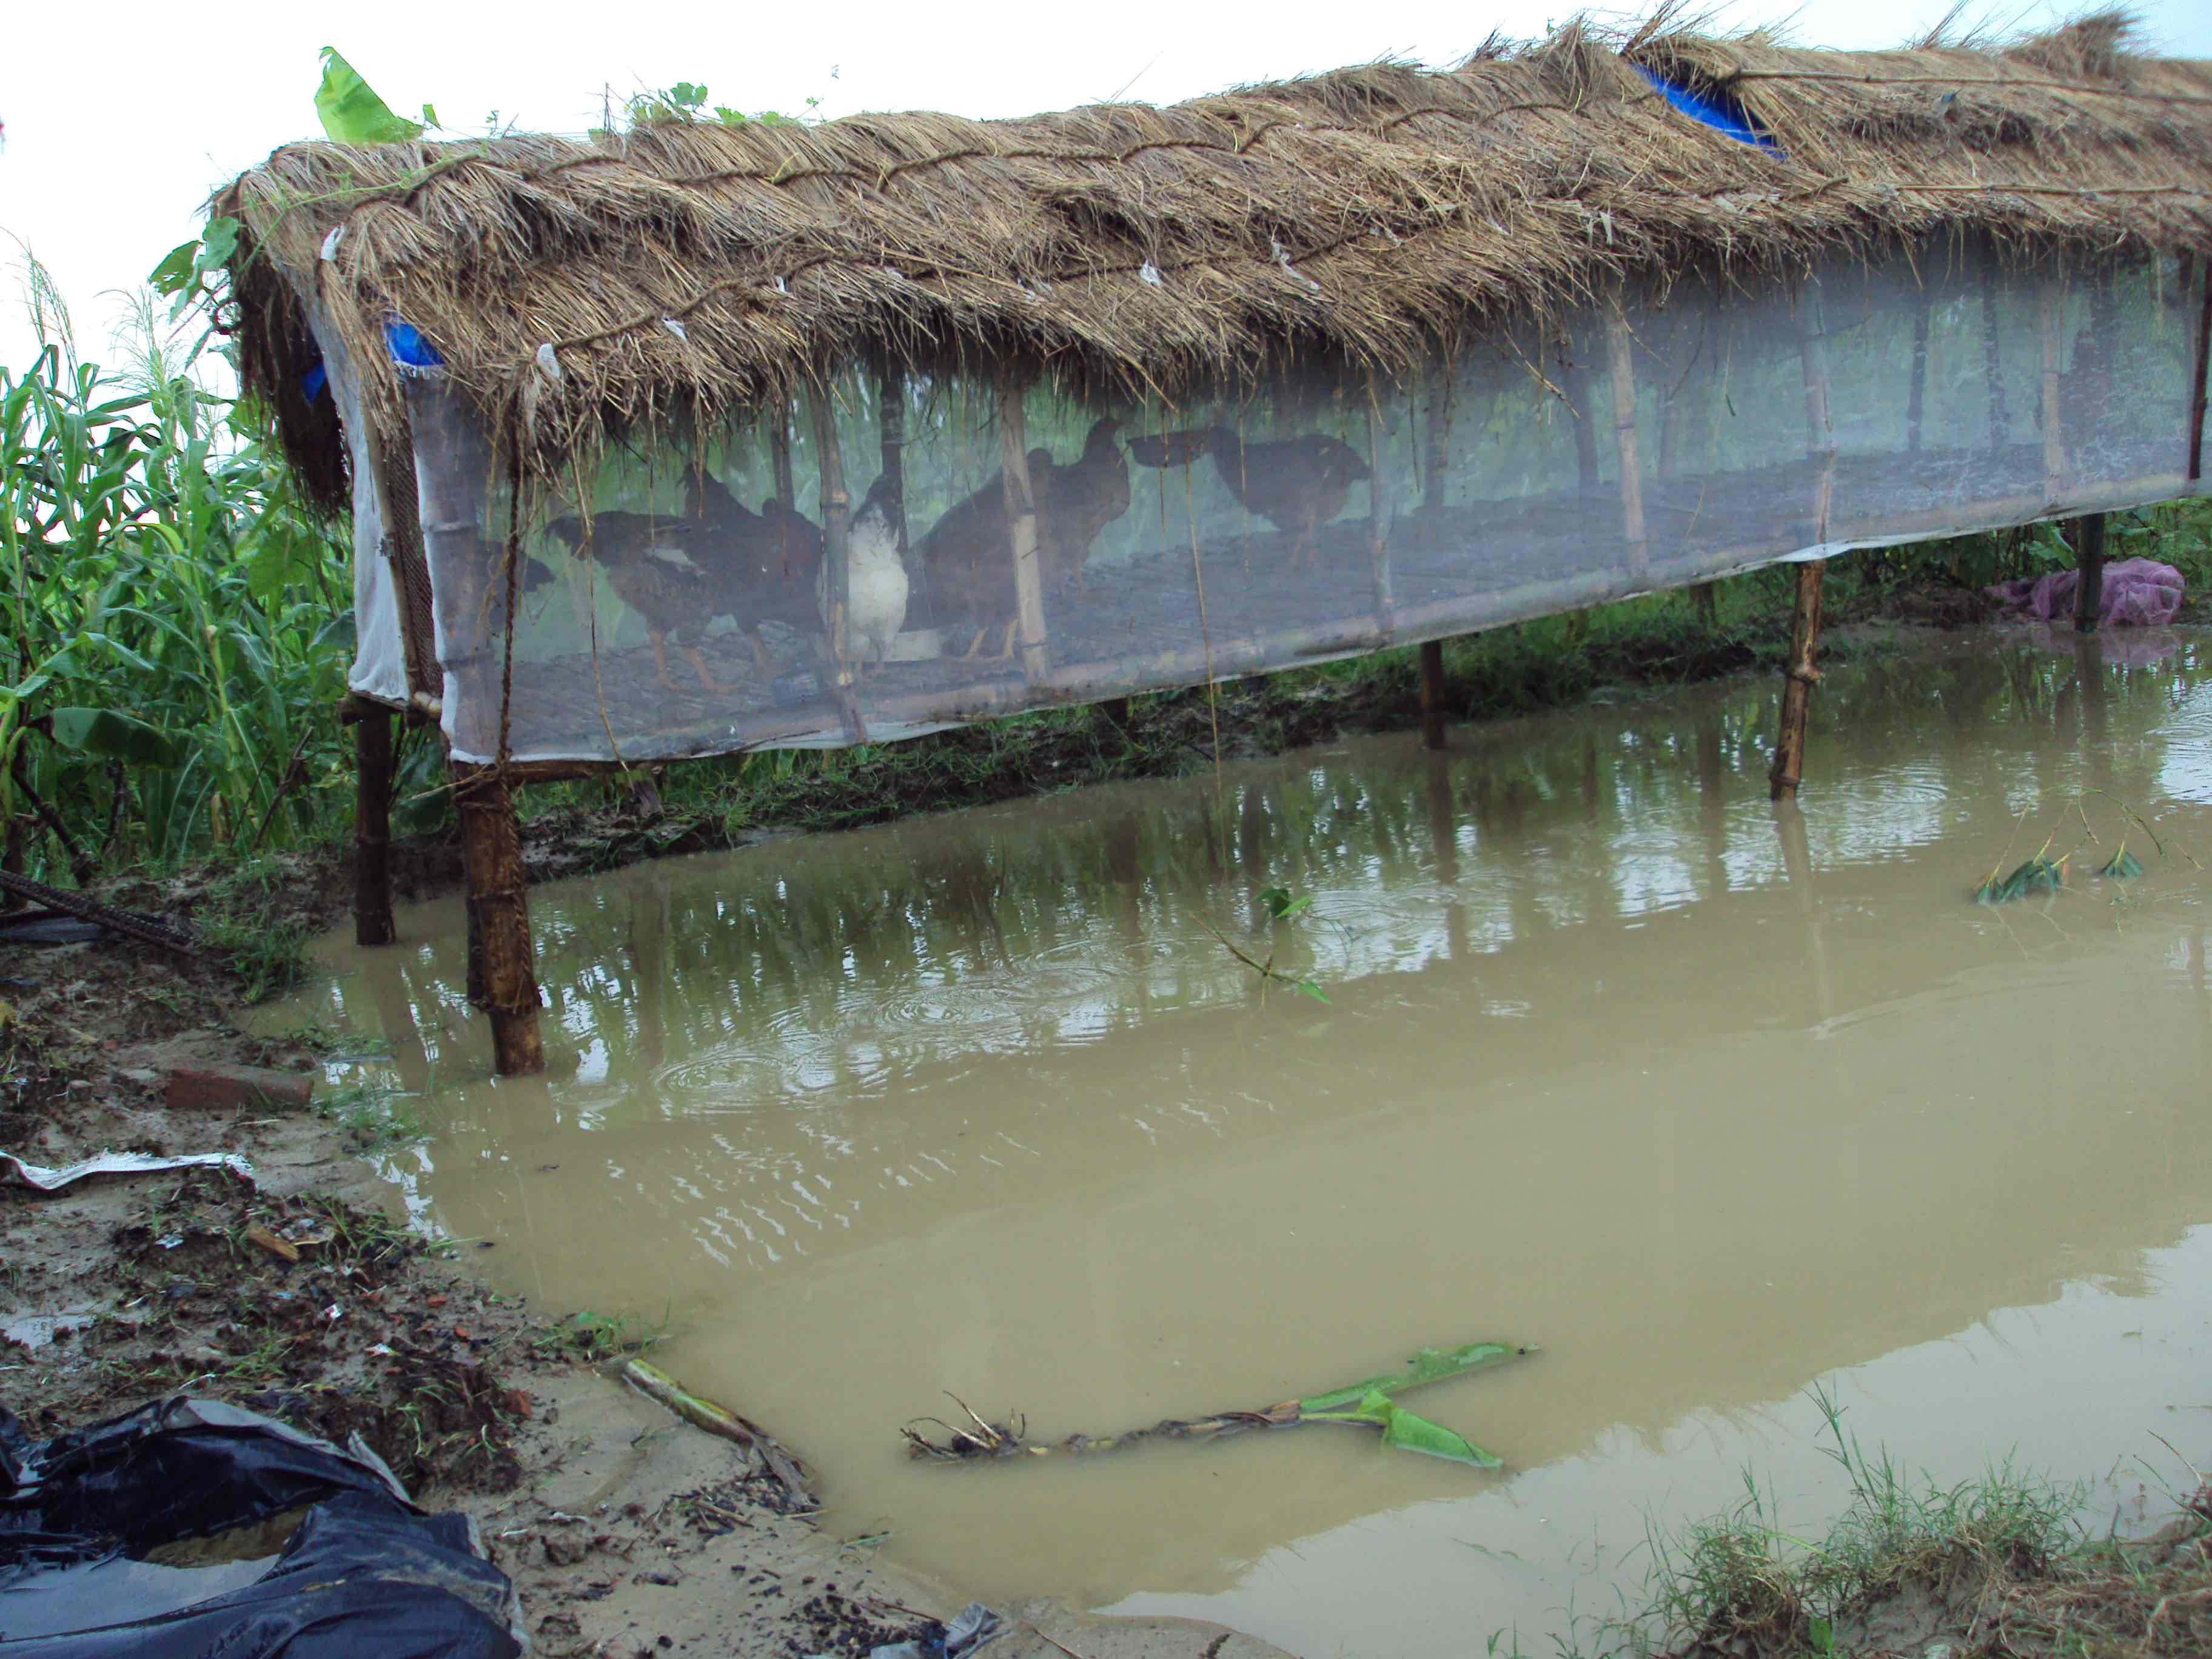 Restoring Livelihoods in Villages After Floods